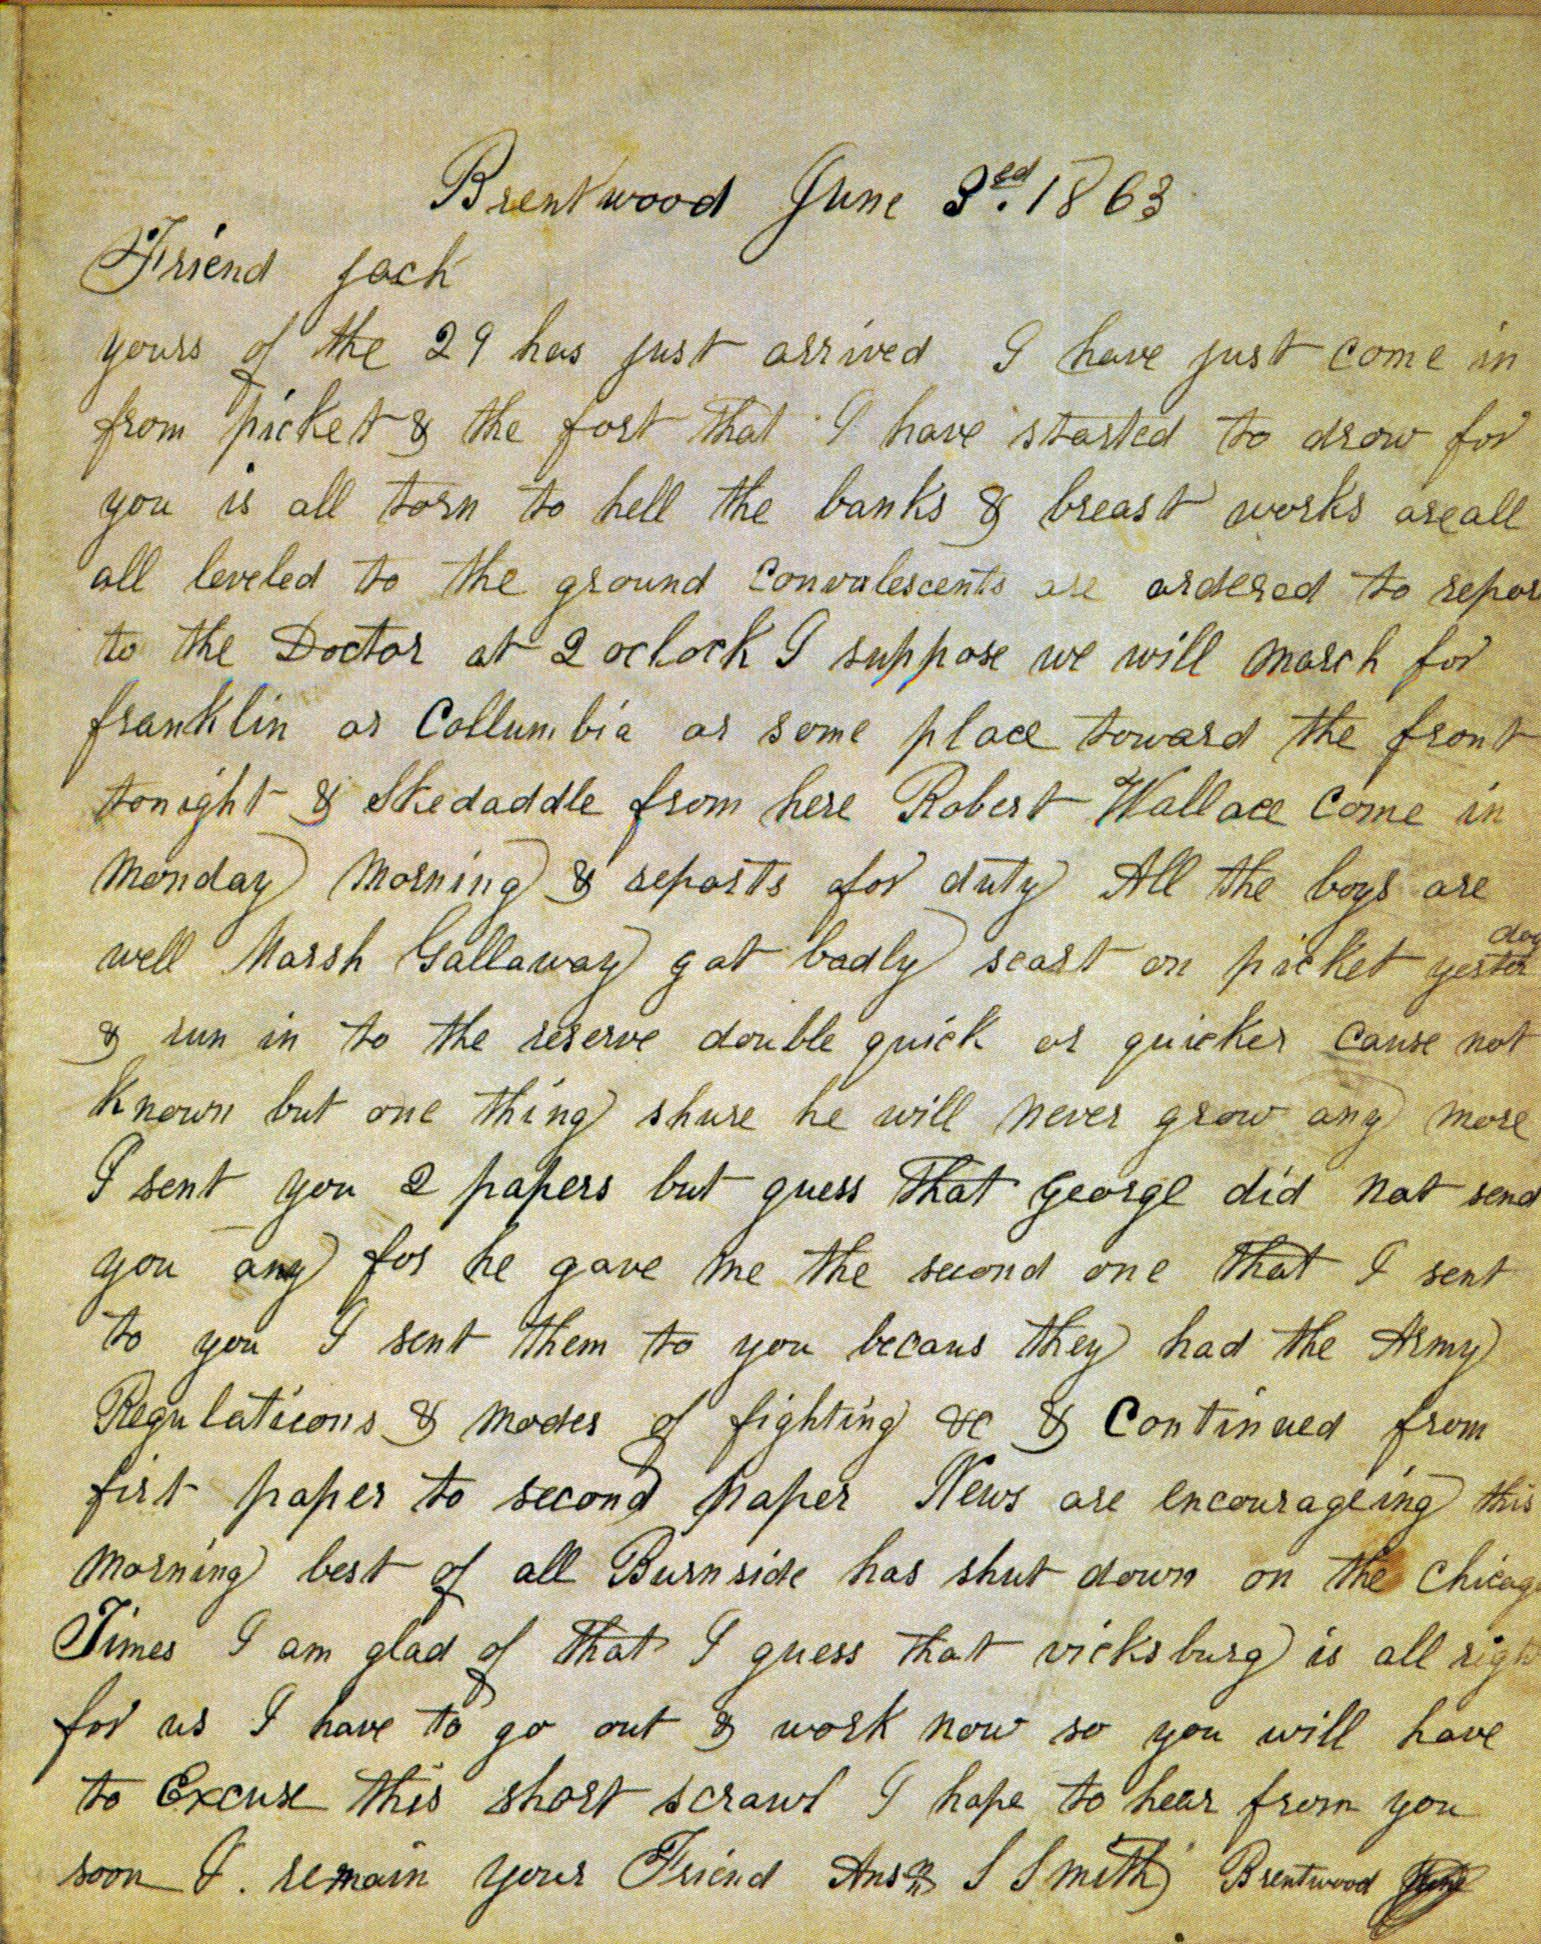 """This is a letter written in June 1863 by A. Smith, serving with the US Army at Camp Brentwood. """"Dear Jack, I have just come in from pickets. The fort I have just started to draw from you is all torn to hell. the banks and breastworks are all leveled to th"""